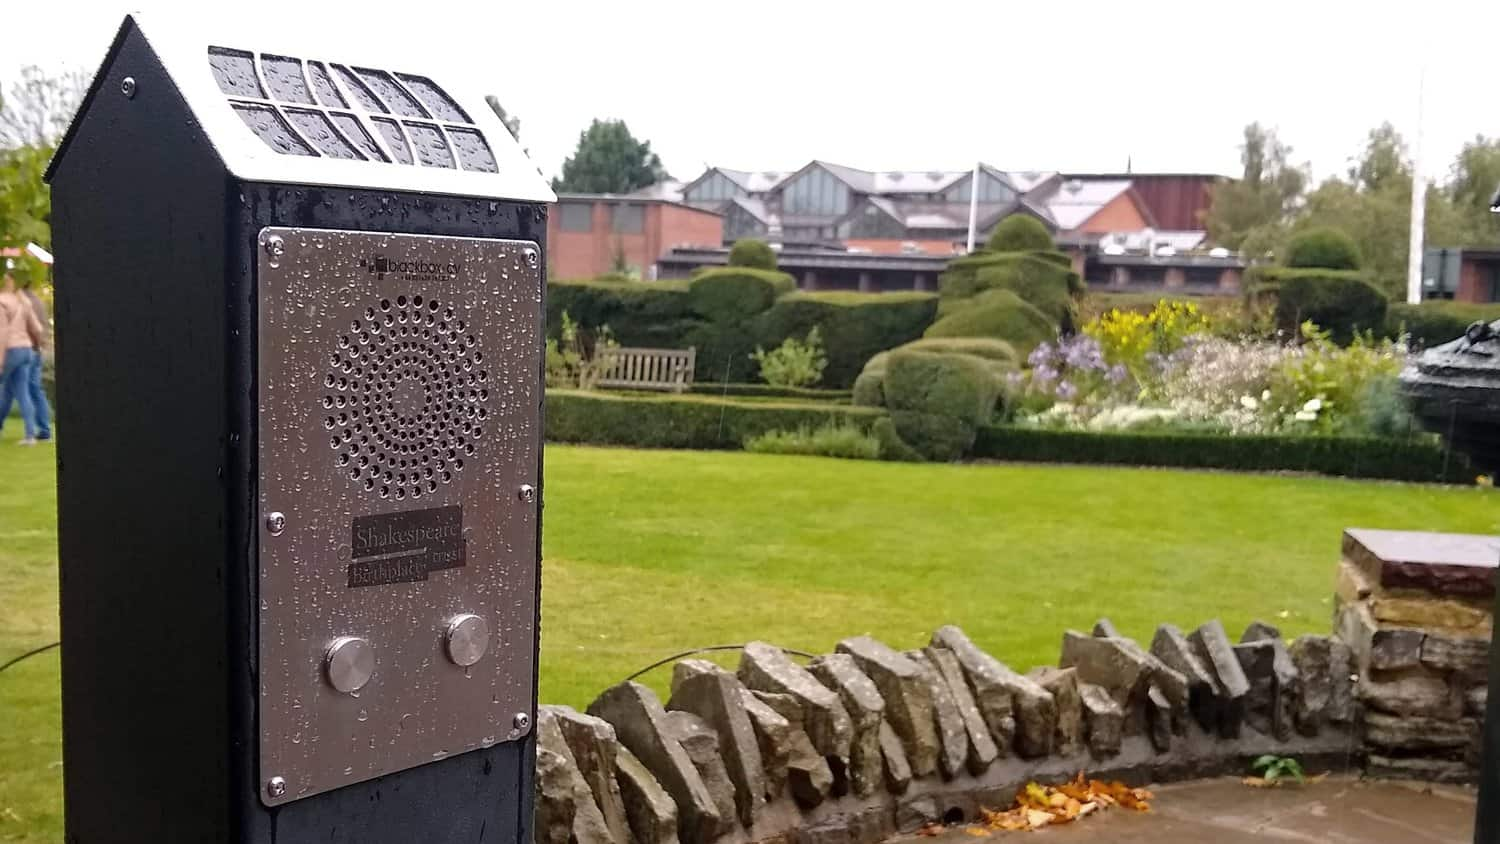 Weather Resistant Solar Audio Post at Shakespeare Birthplace Trust